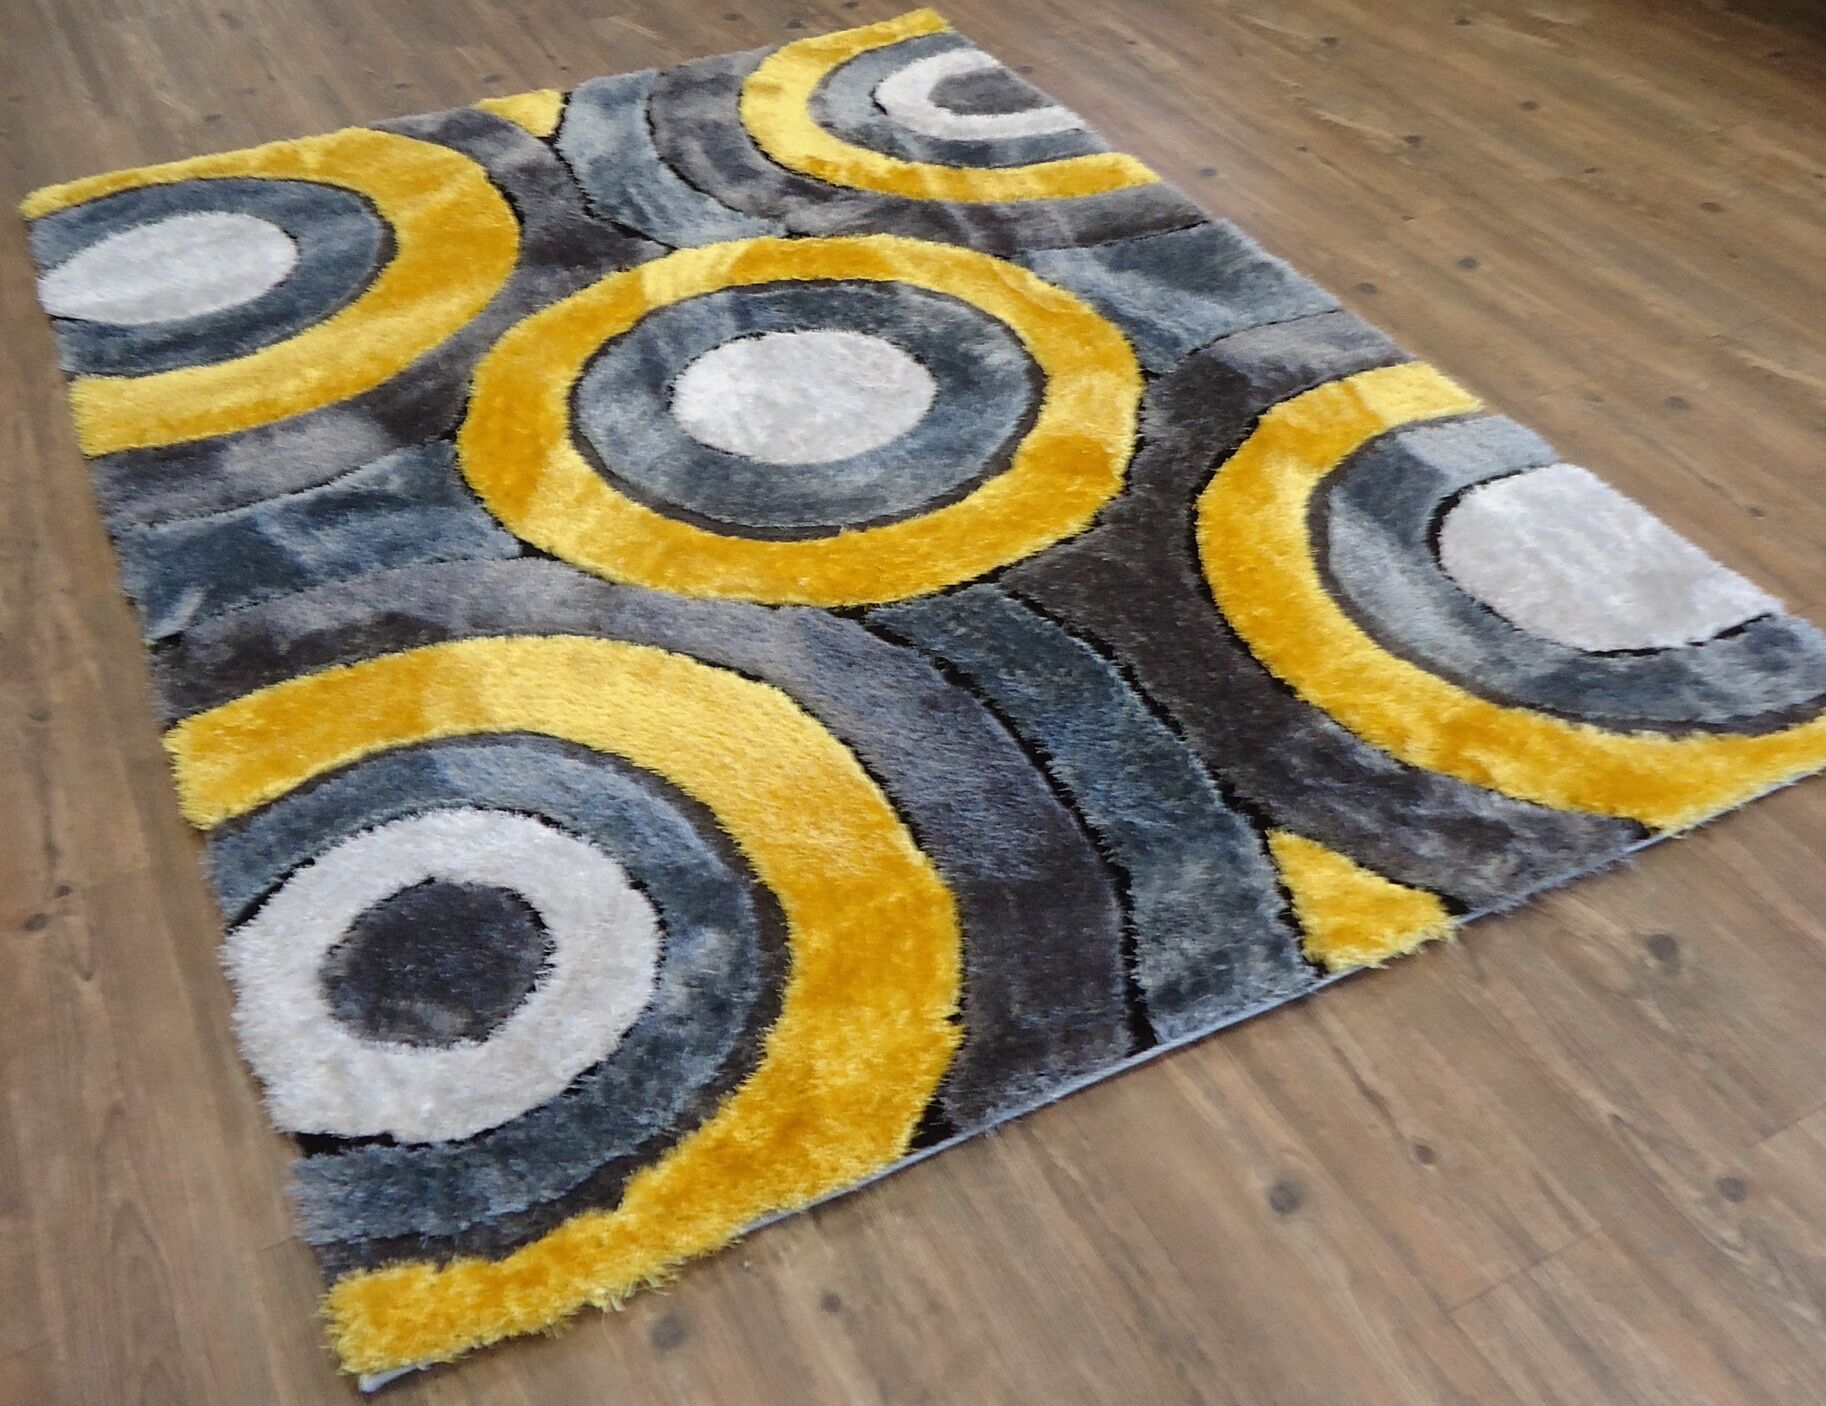 Queanbeyan Shaggy Hand-Tufted Gray/Yellow Area Rug